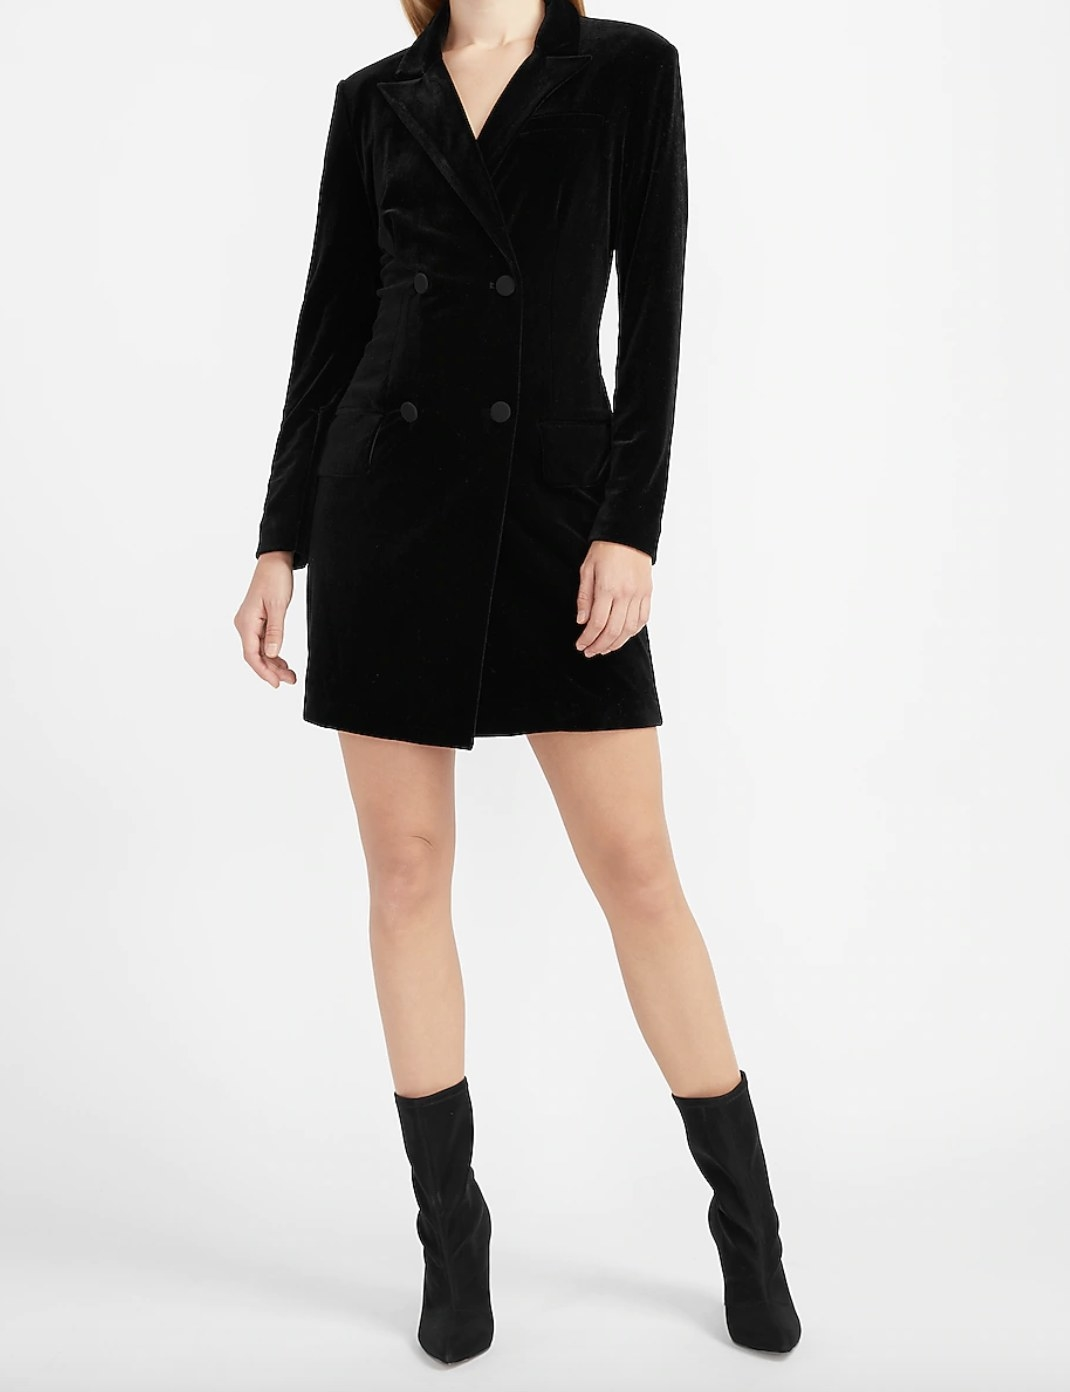 a black belted double breasted blazer dress